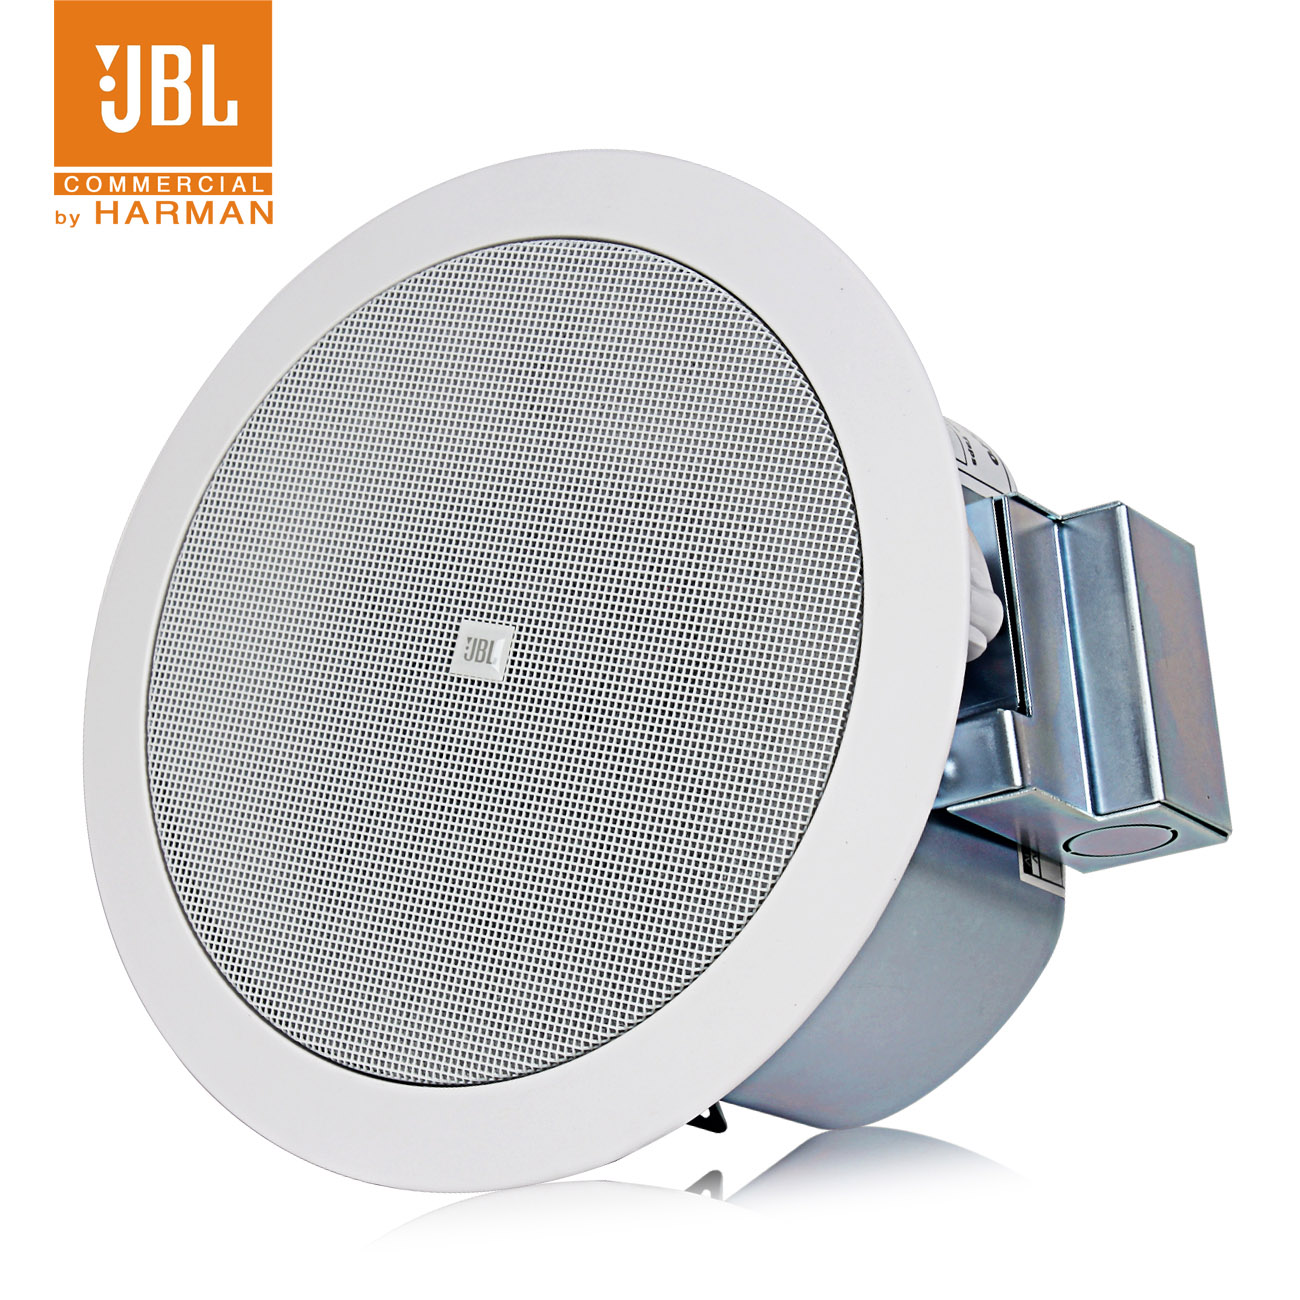 ceiling t f rgbtcspd crutchfield control iseo p commercial in com jbl speakers at